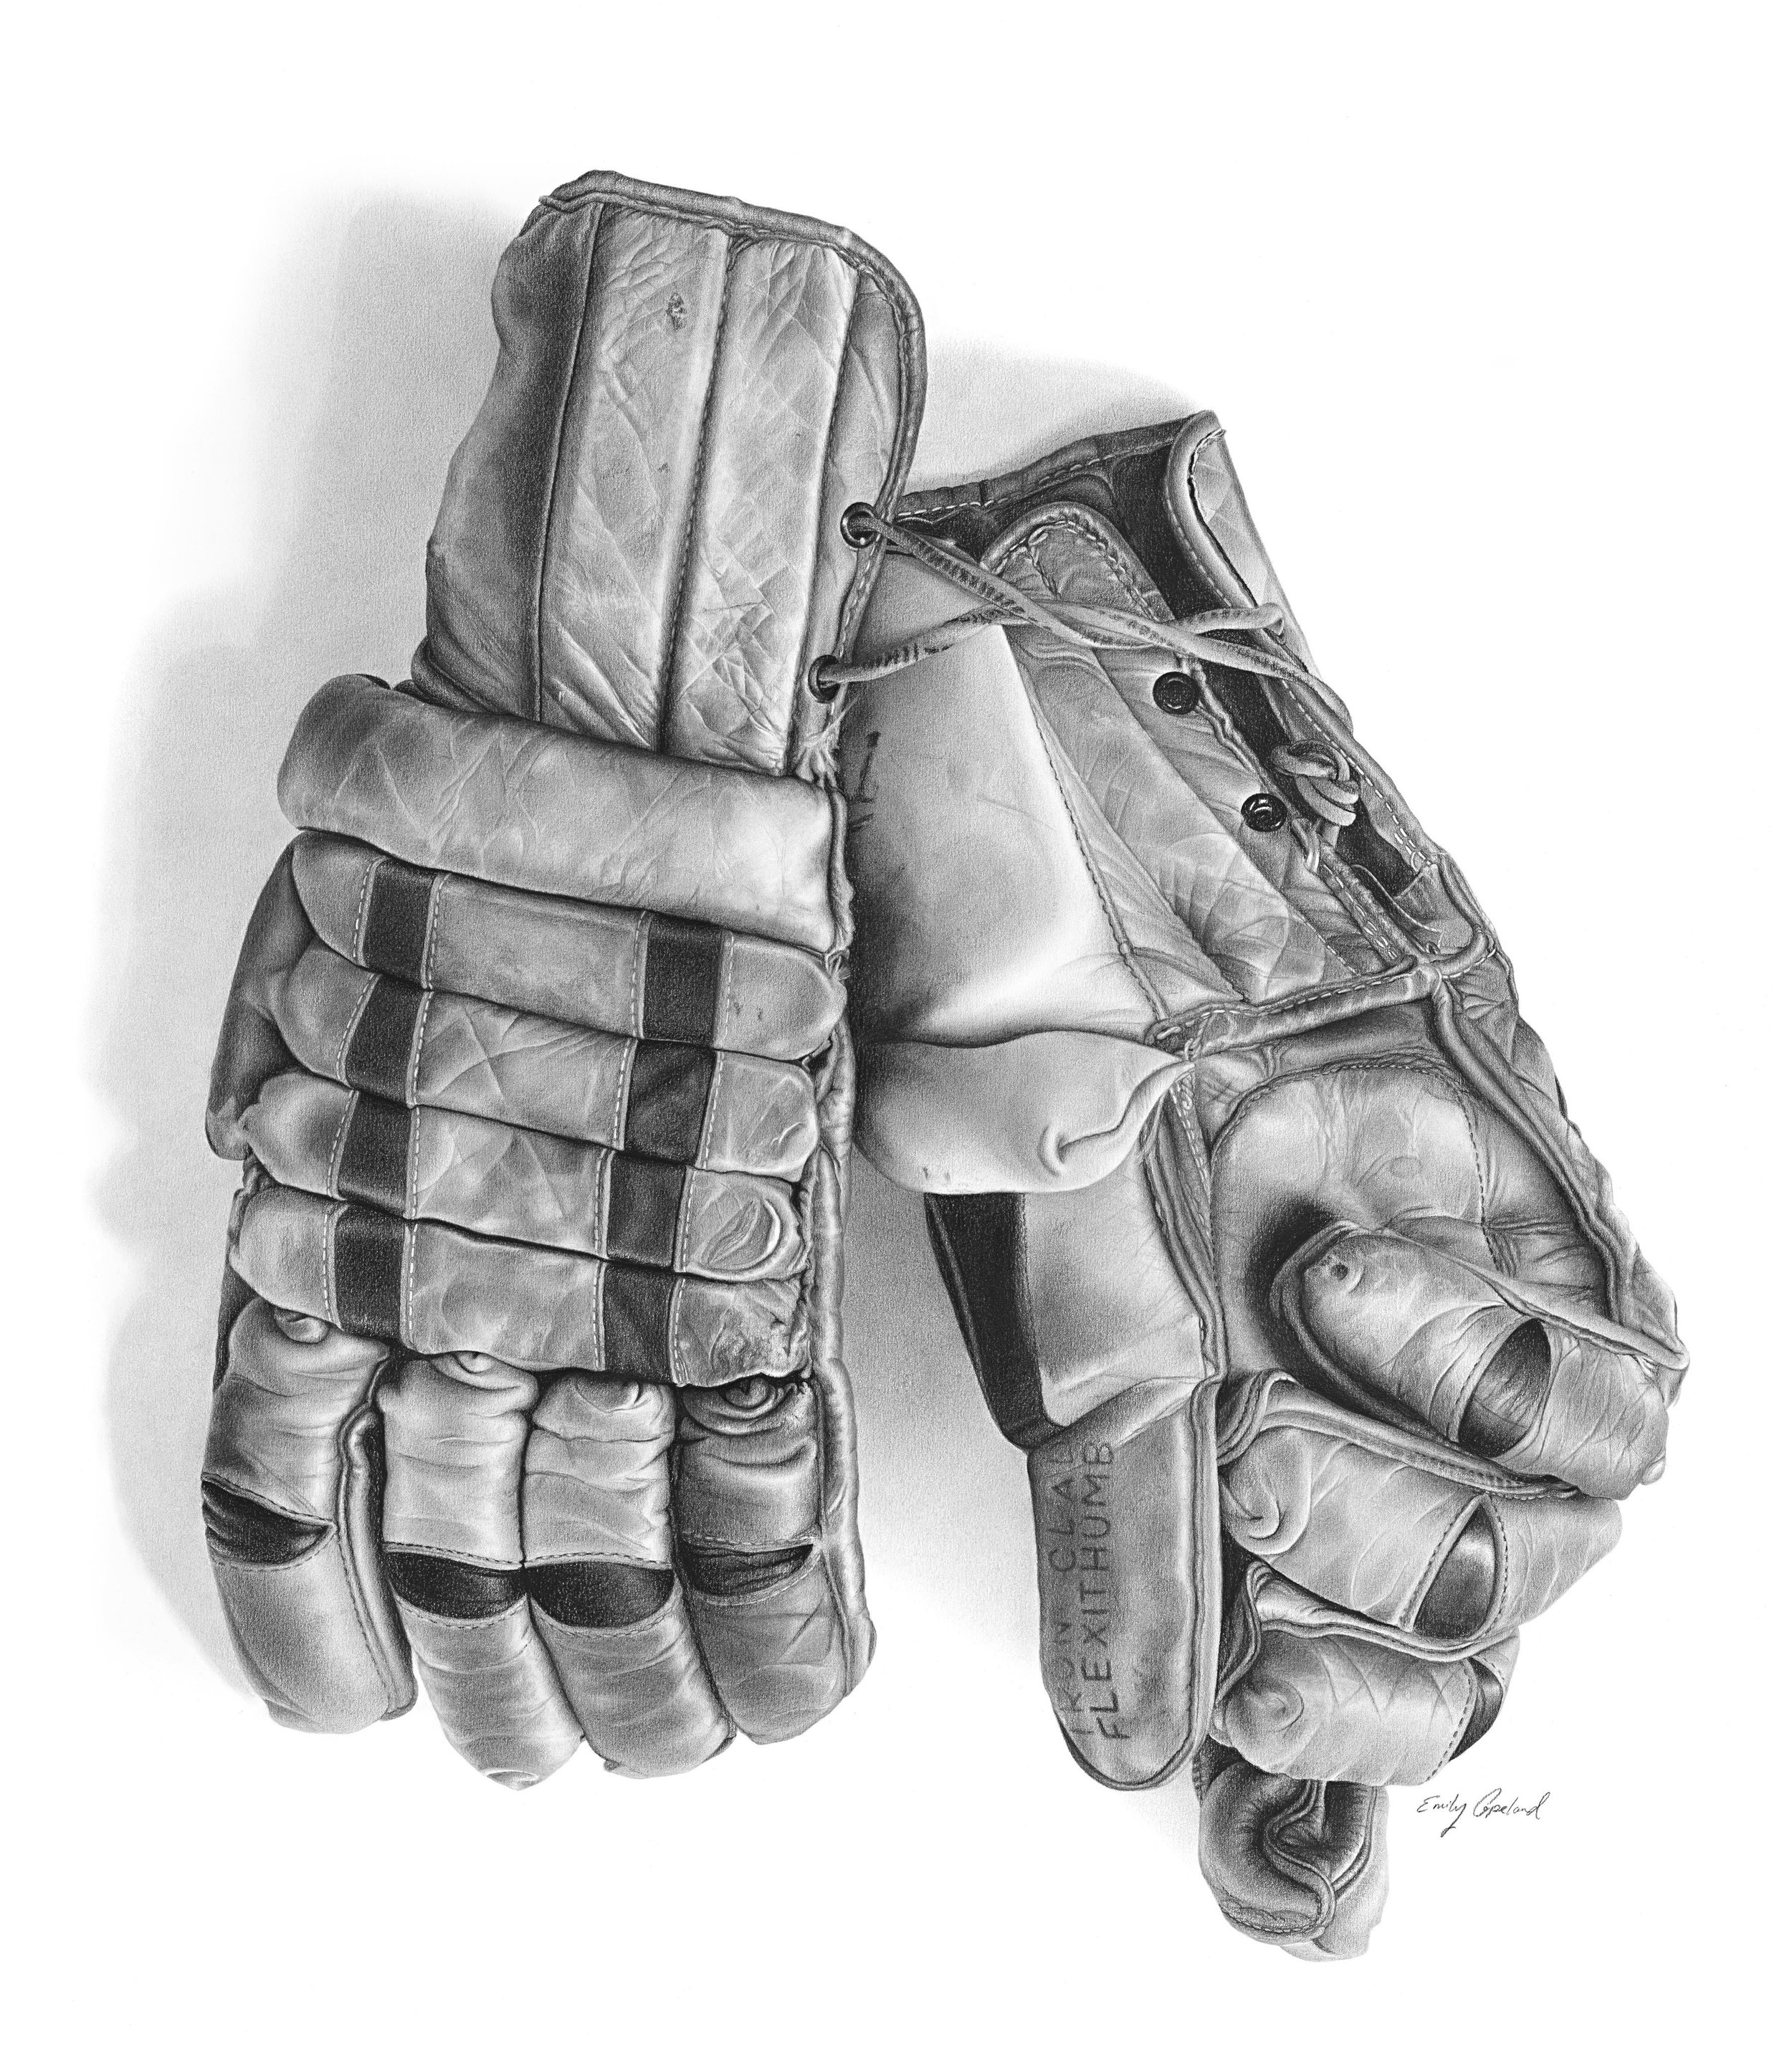 Charcoal Drawing of Antique Hockey Gloves